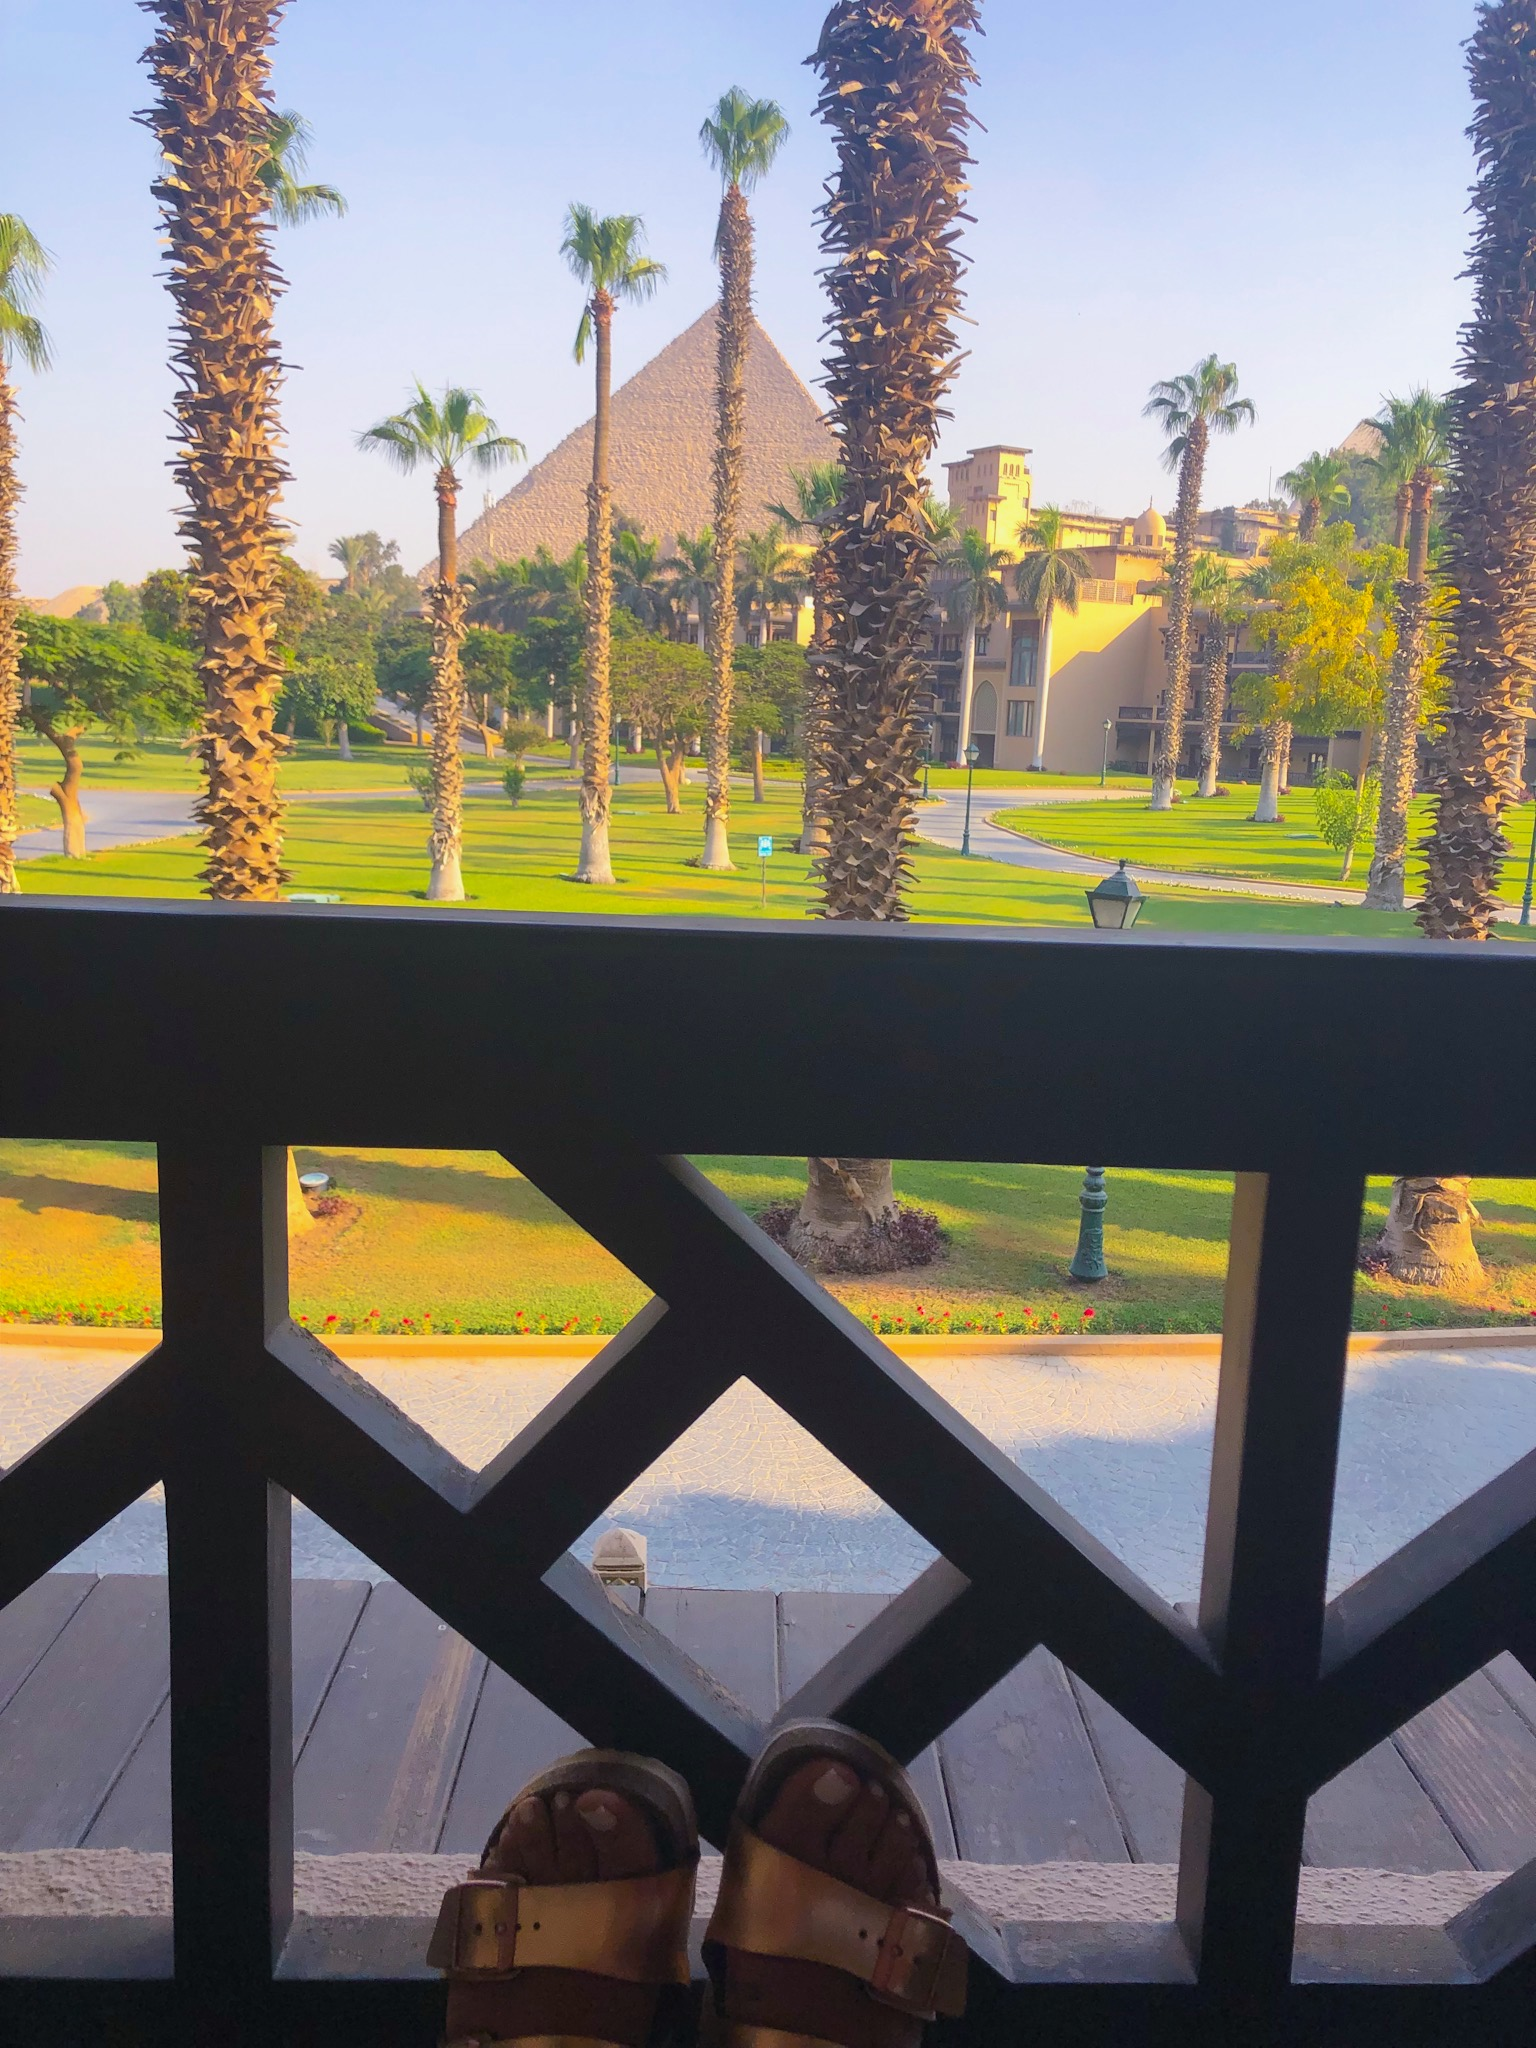 View of the pyramids from my hotel room balcony.